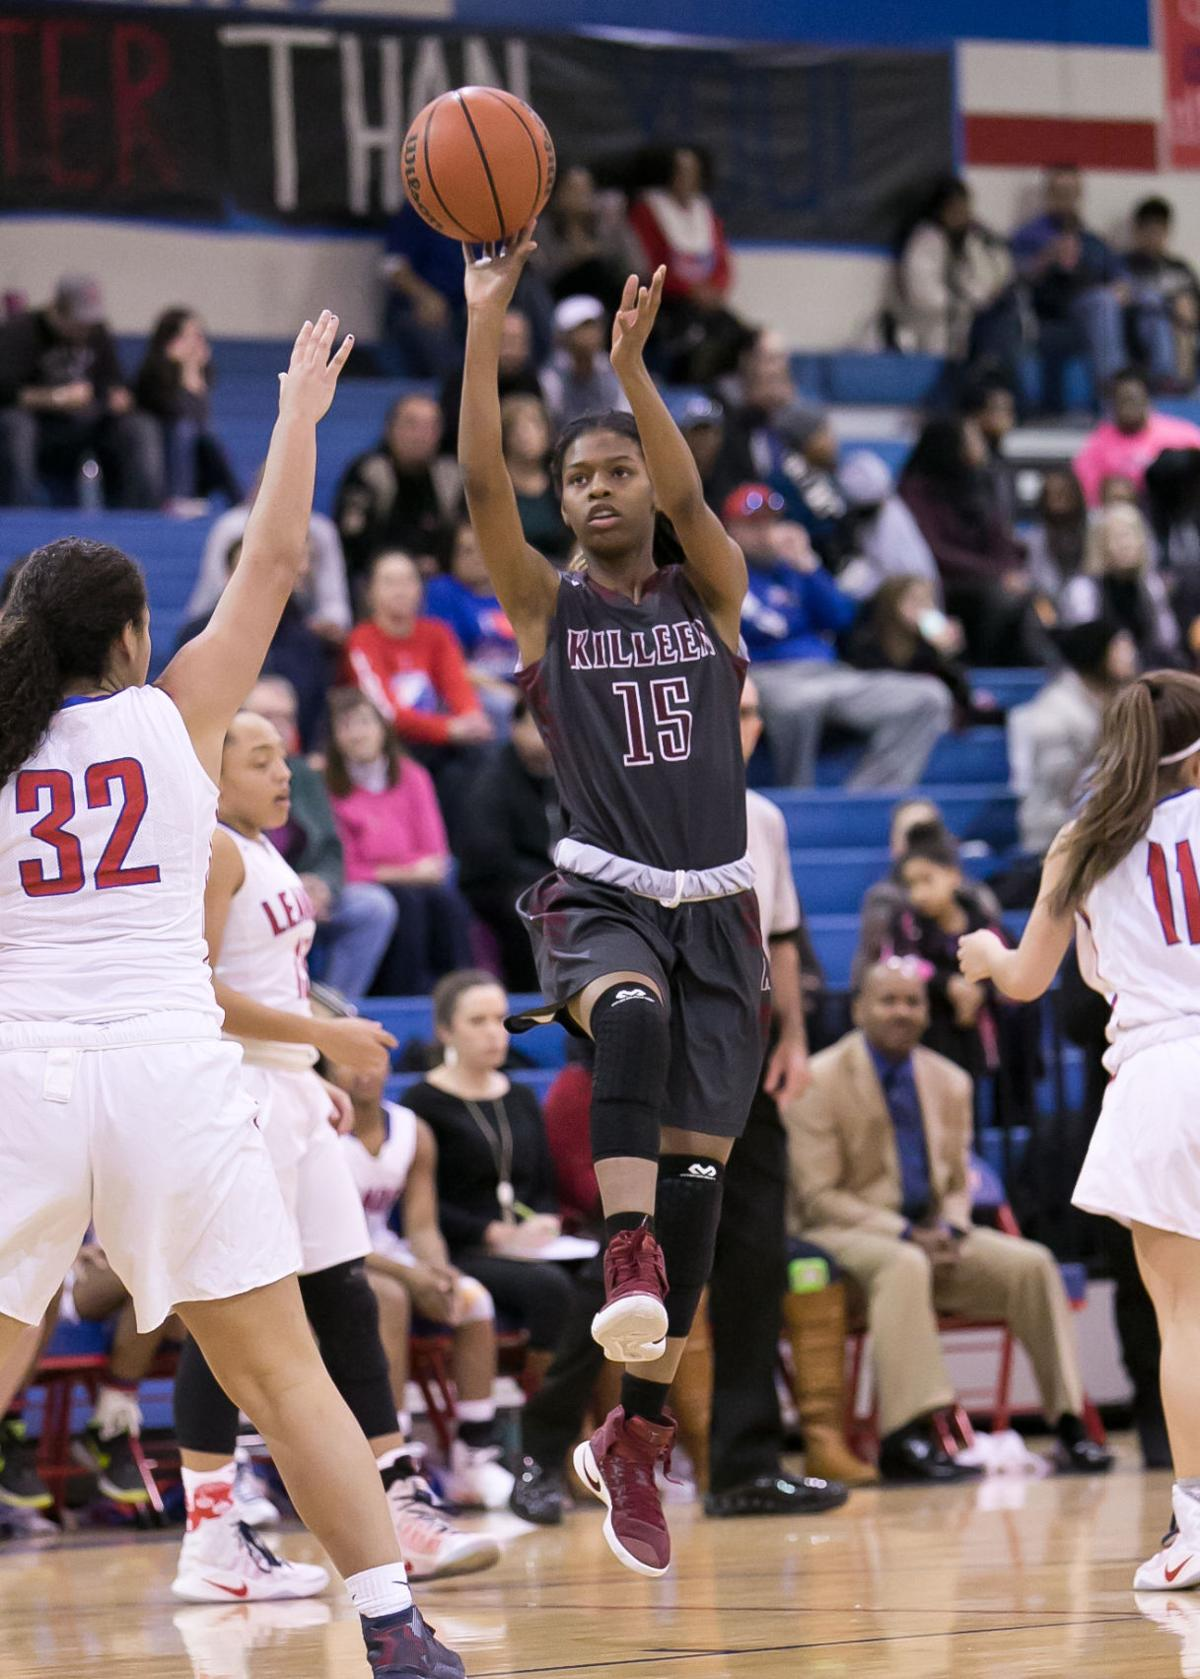 Killeen at Leander Girls Basketball